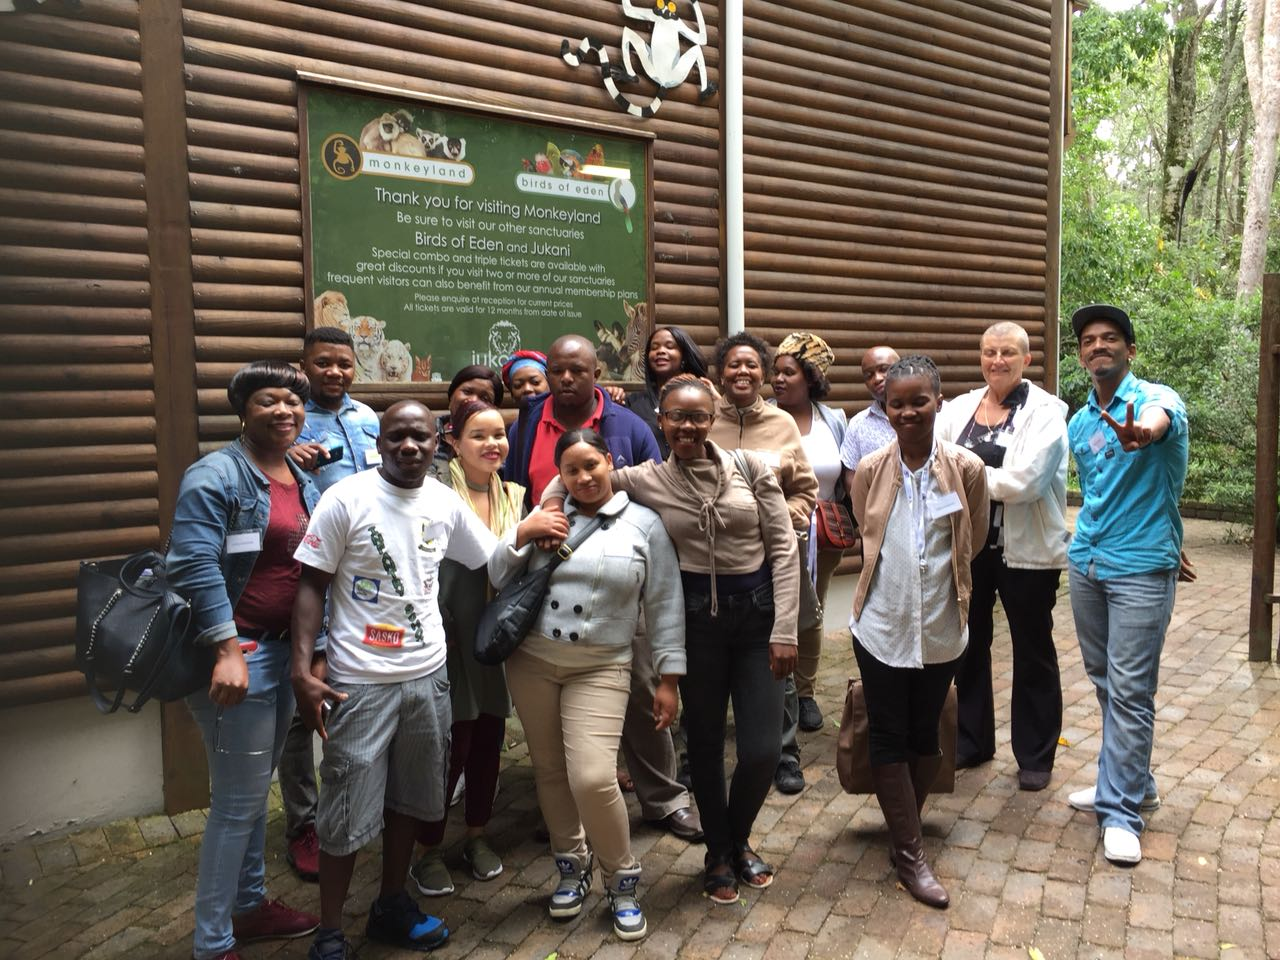 Plett Tourism joins forces with the Francois Ferreira Academy, Skål International and Bitou Municipality to train Tourism Ambassadors in the Garden Route